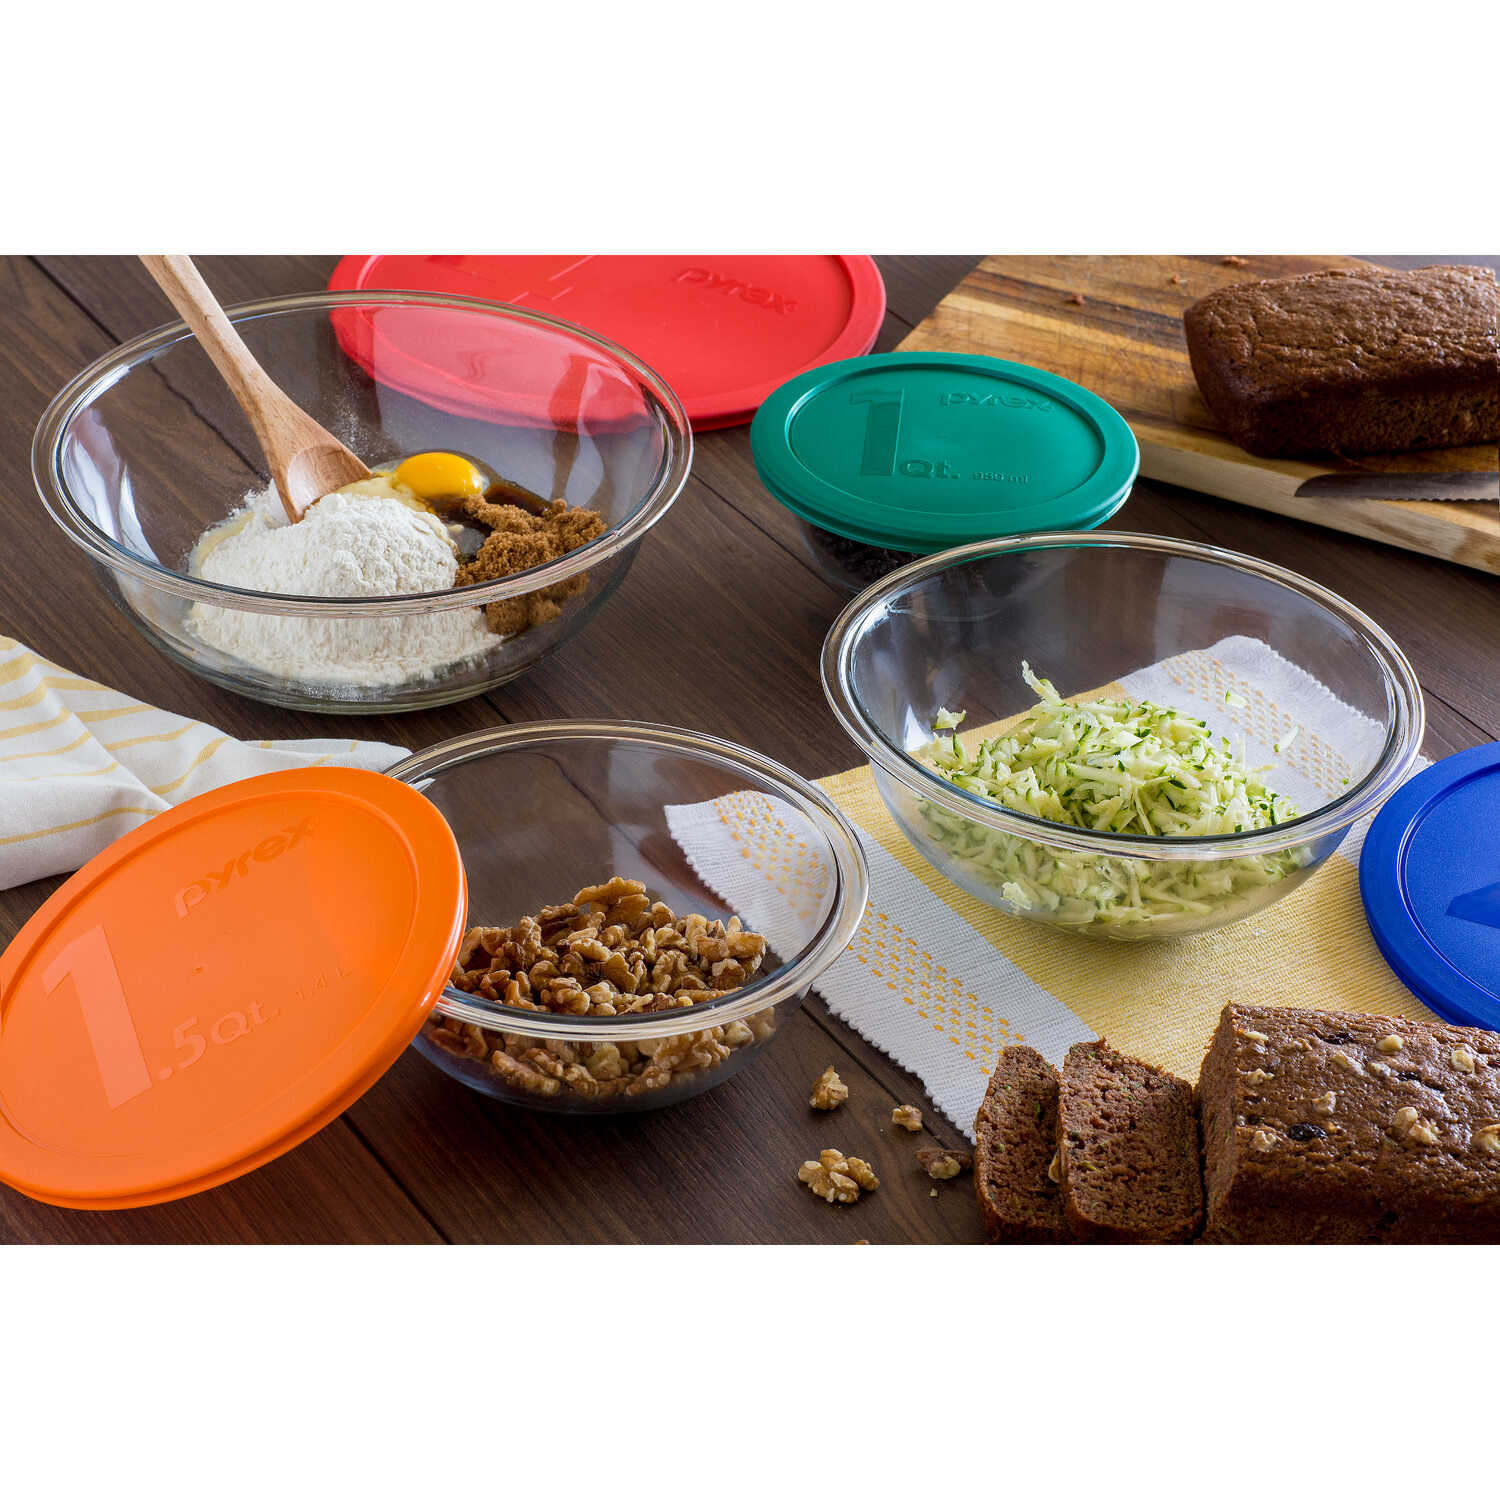 Pyrex  Smart essentials  1, 1.5, 2.5, 4  Glass  Assorted  Mixing Bowl Set  8 pc.